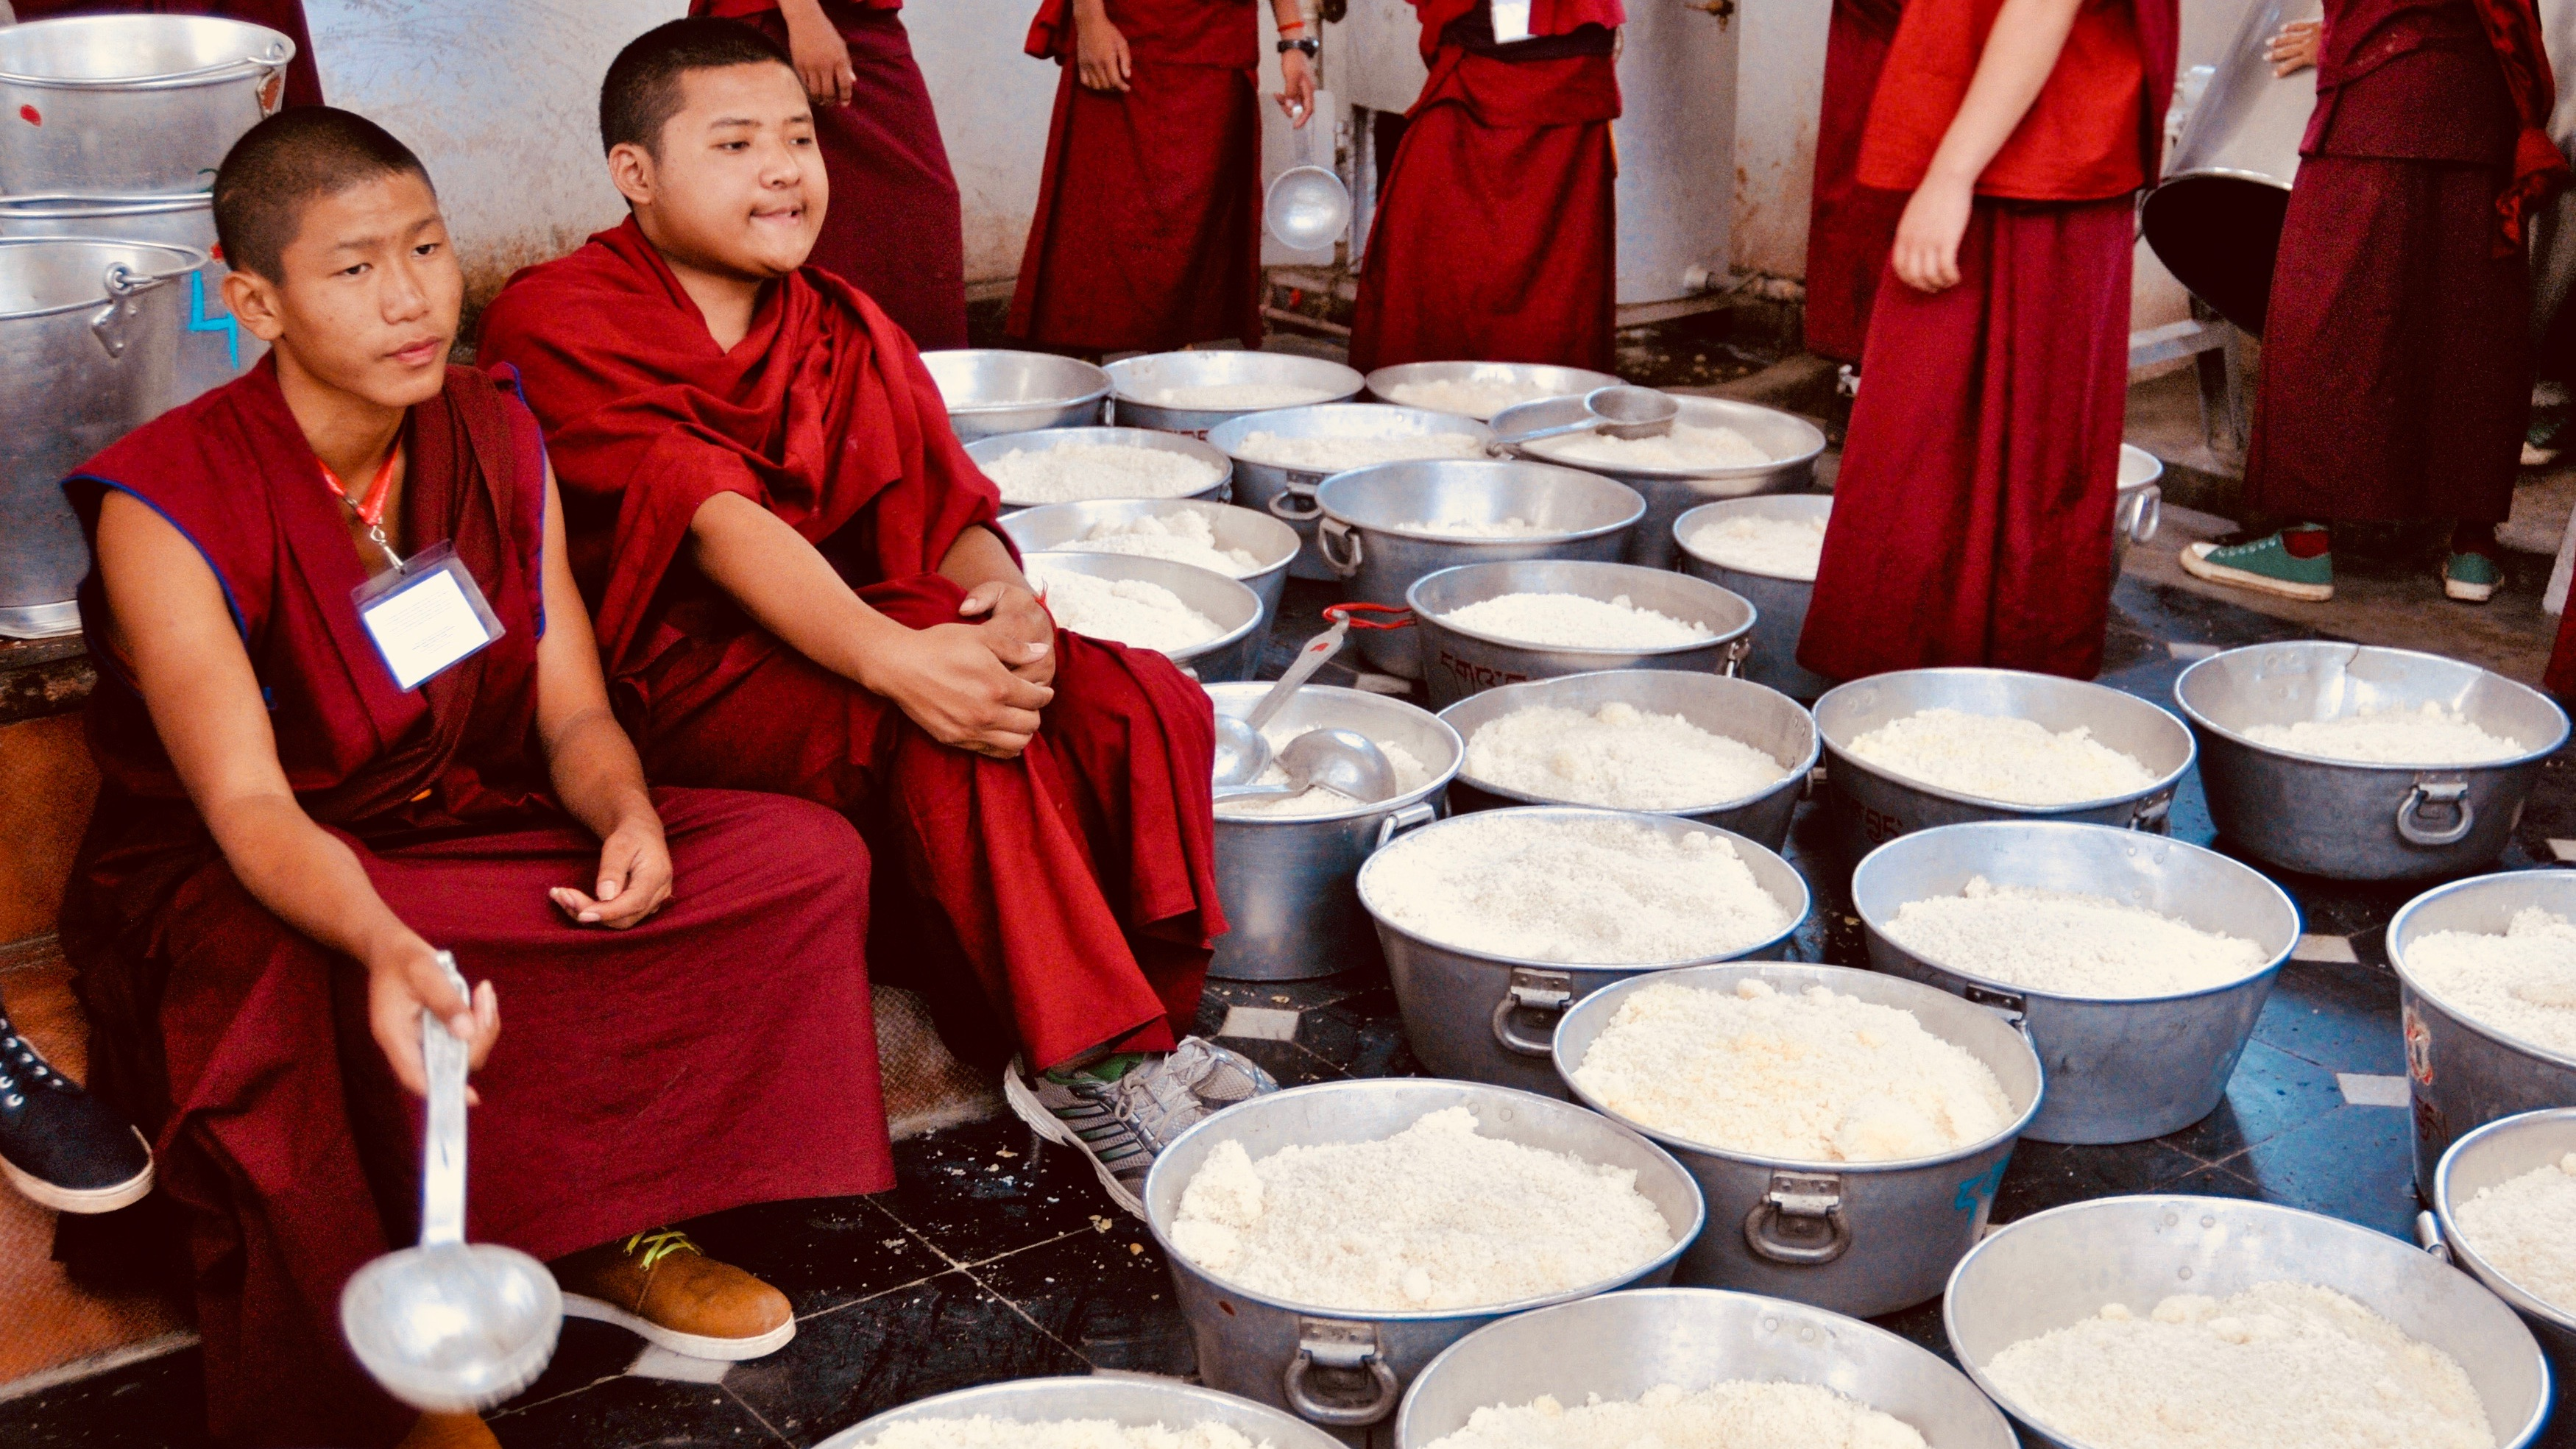 Buddhist monks serve food at monastery.